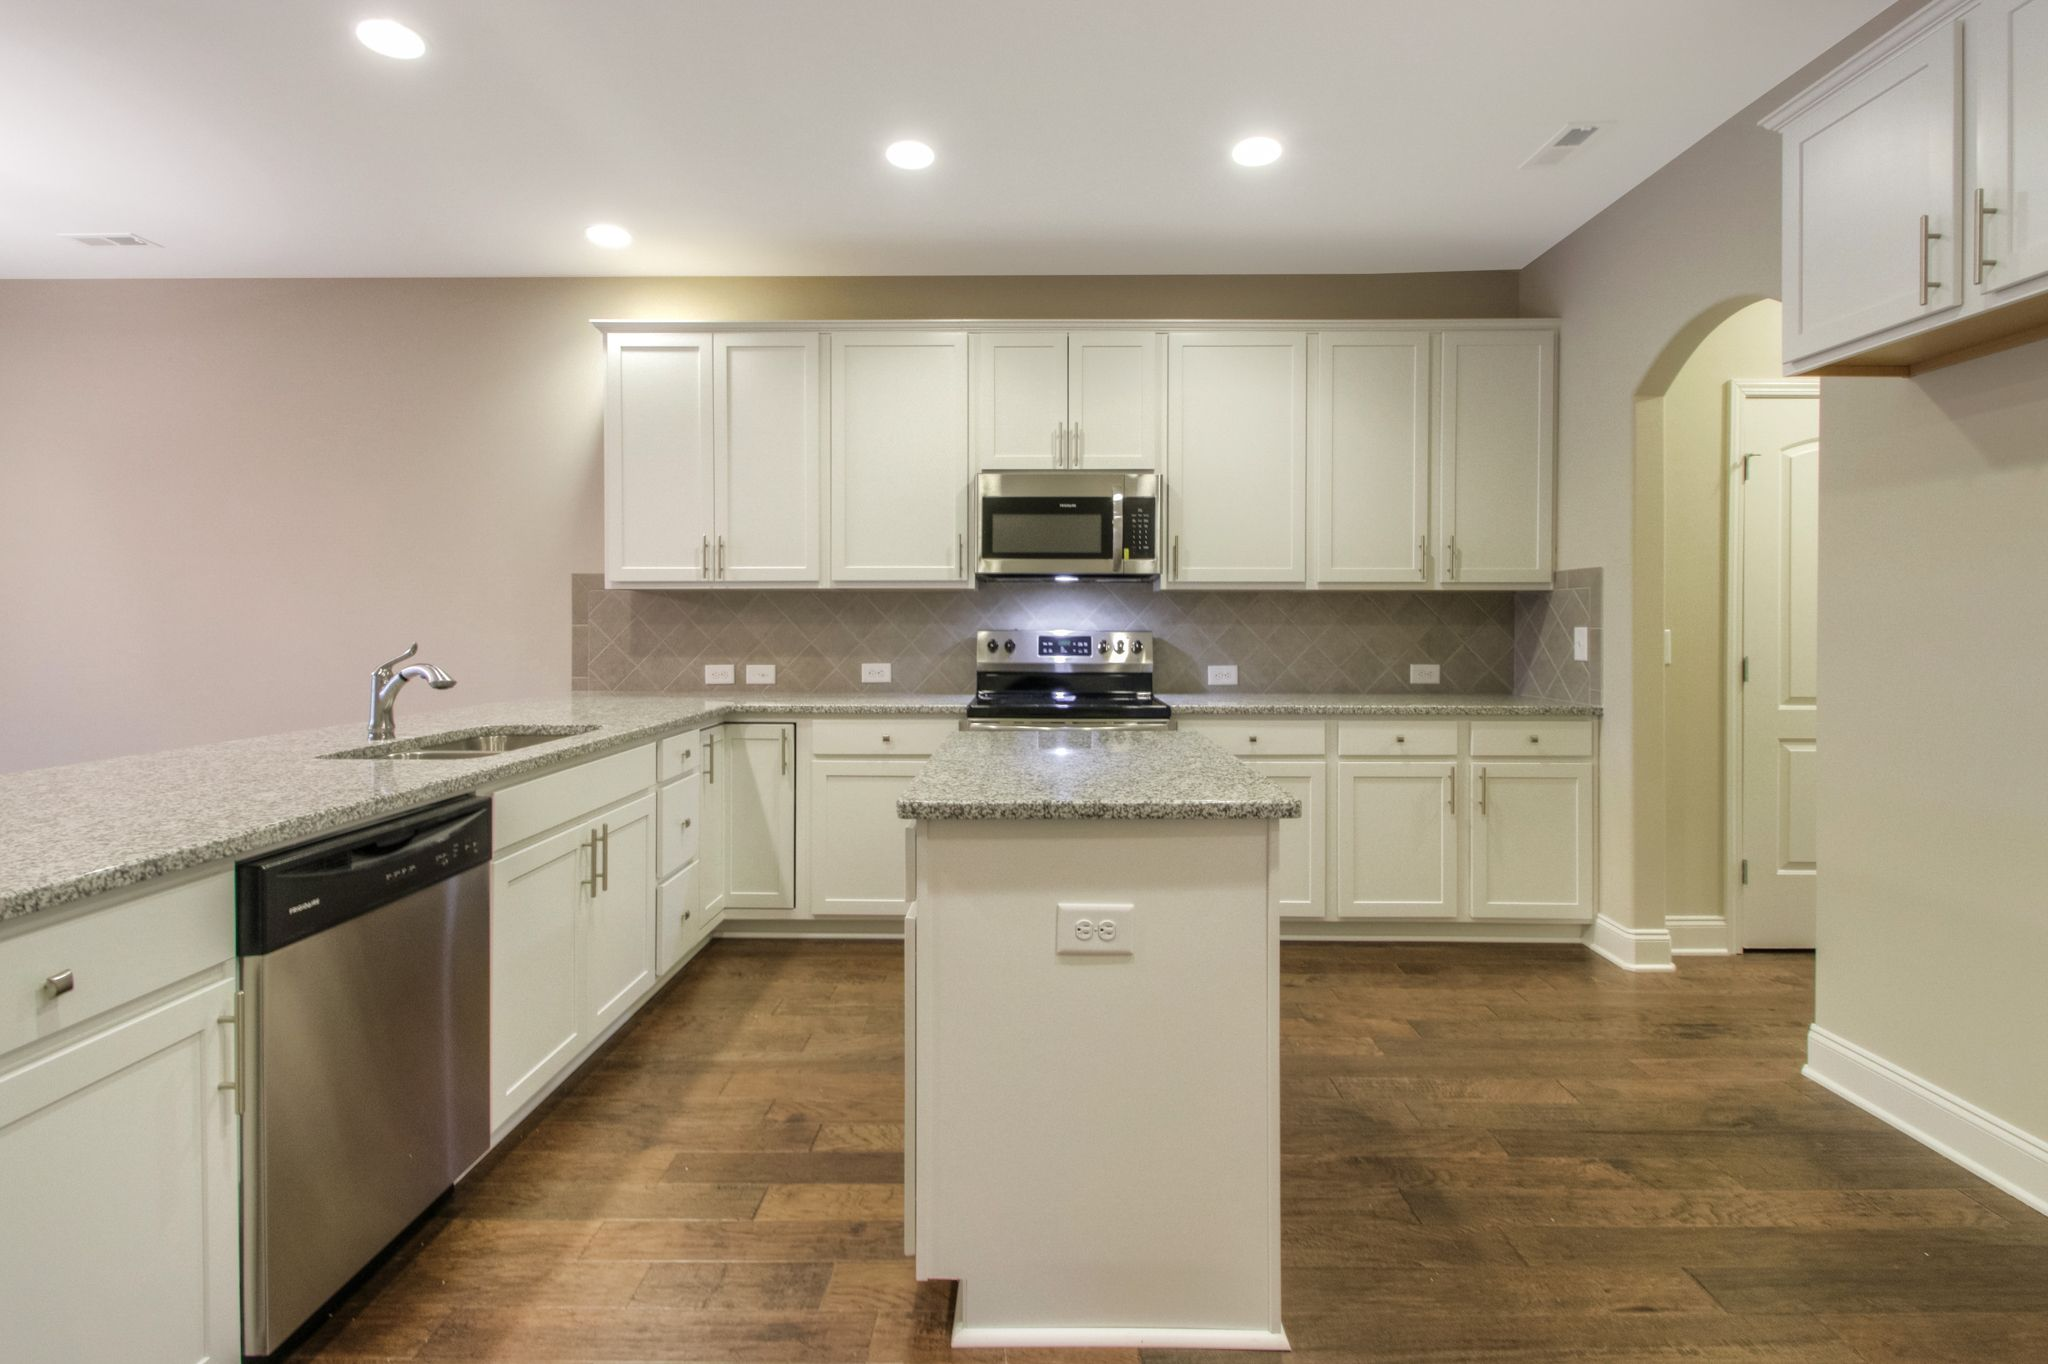 Kitchen featured in The Ashleigh Courtyard Cottage By Goodall Homes in Chattanooga, GA